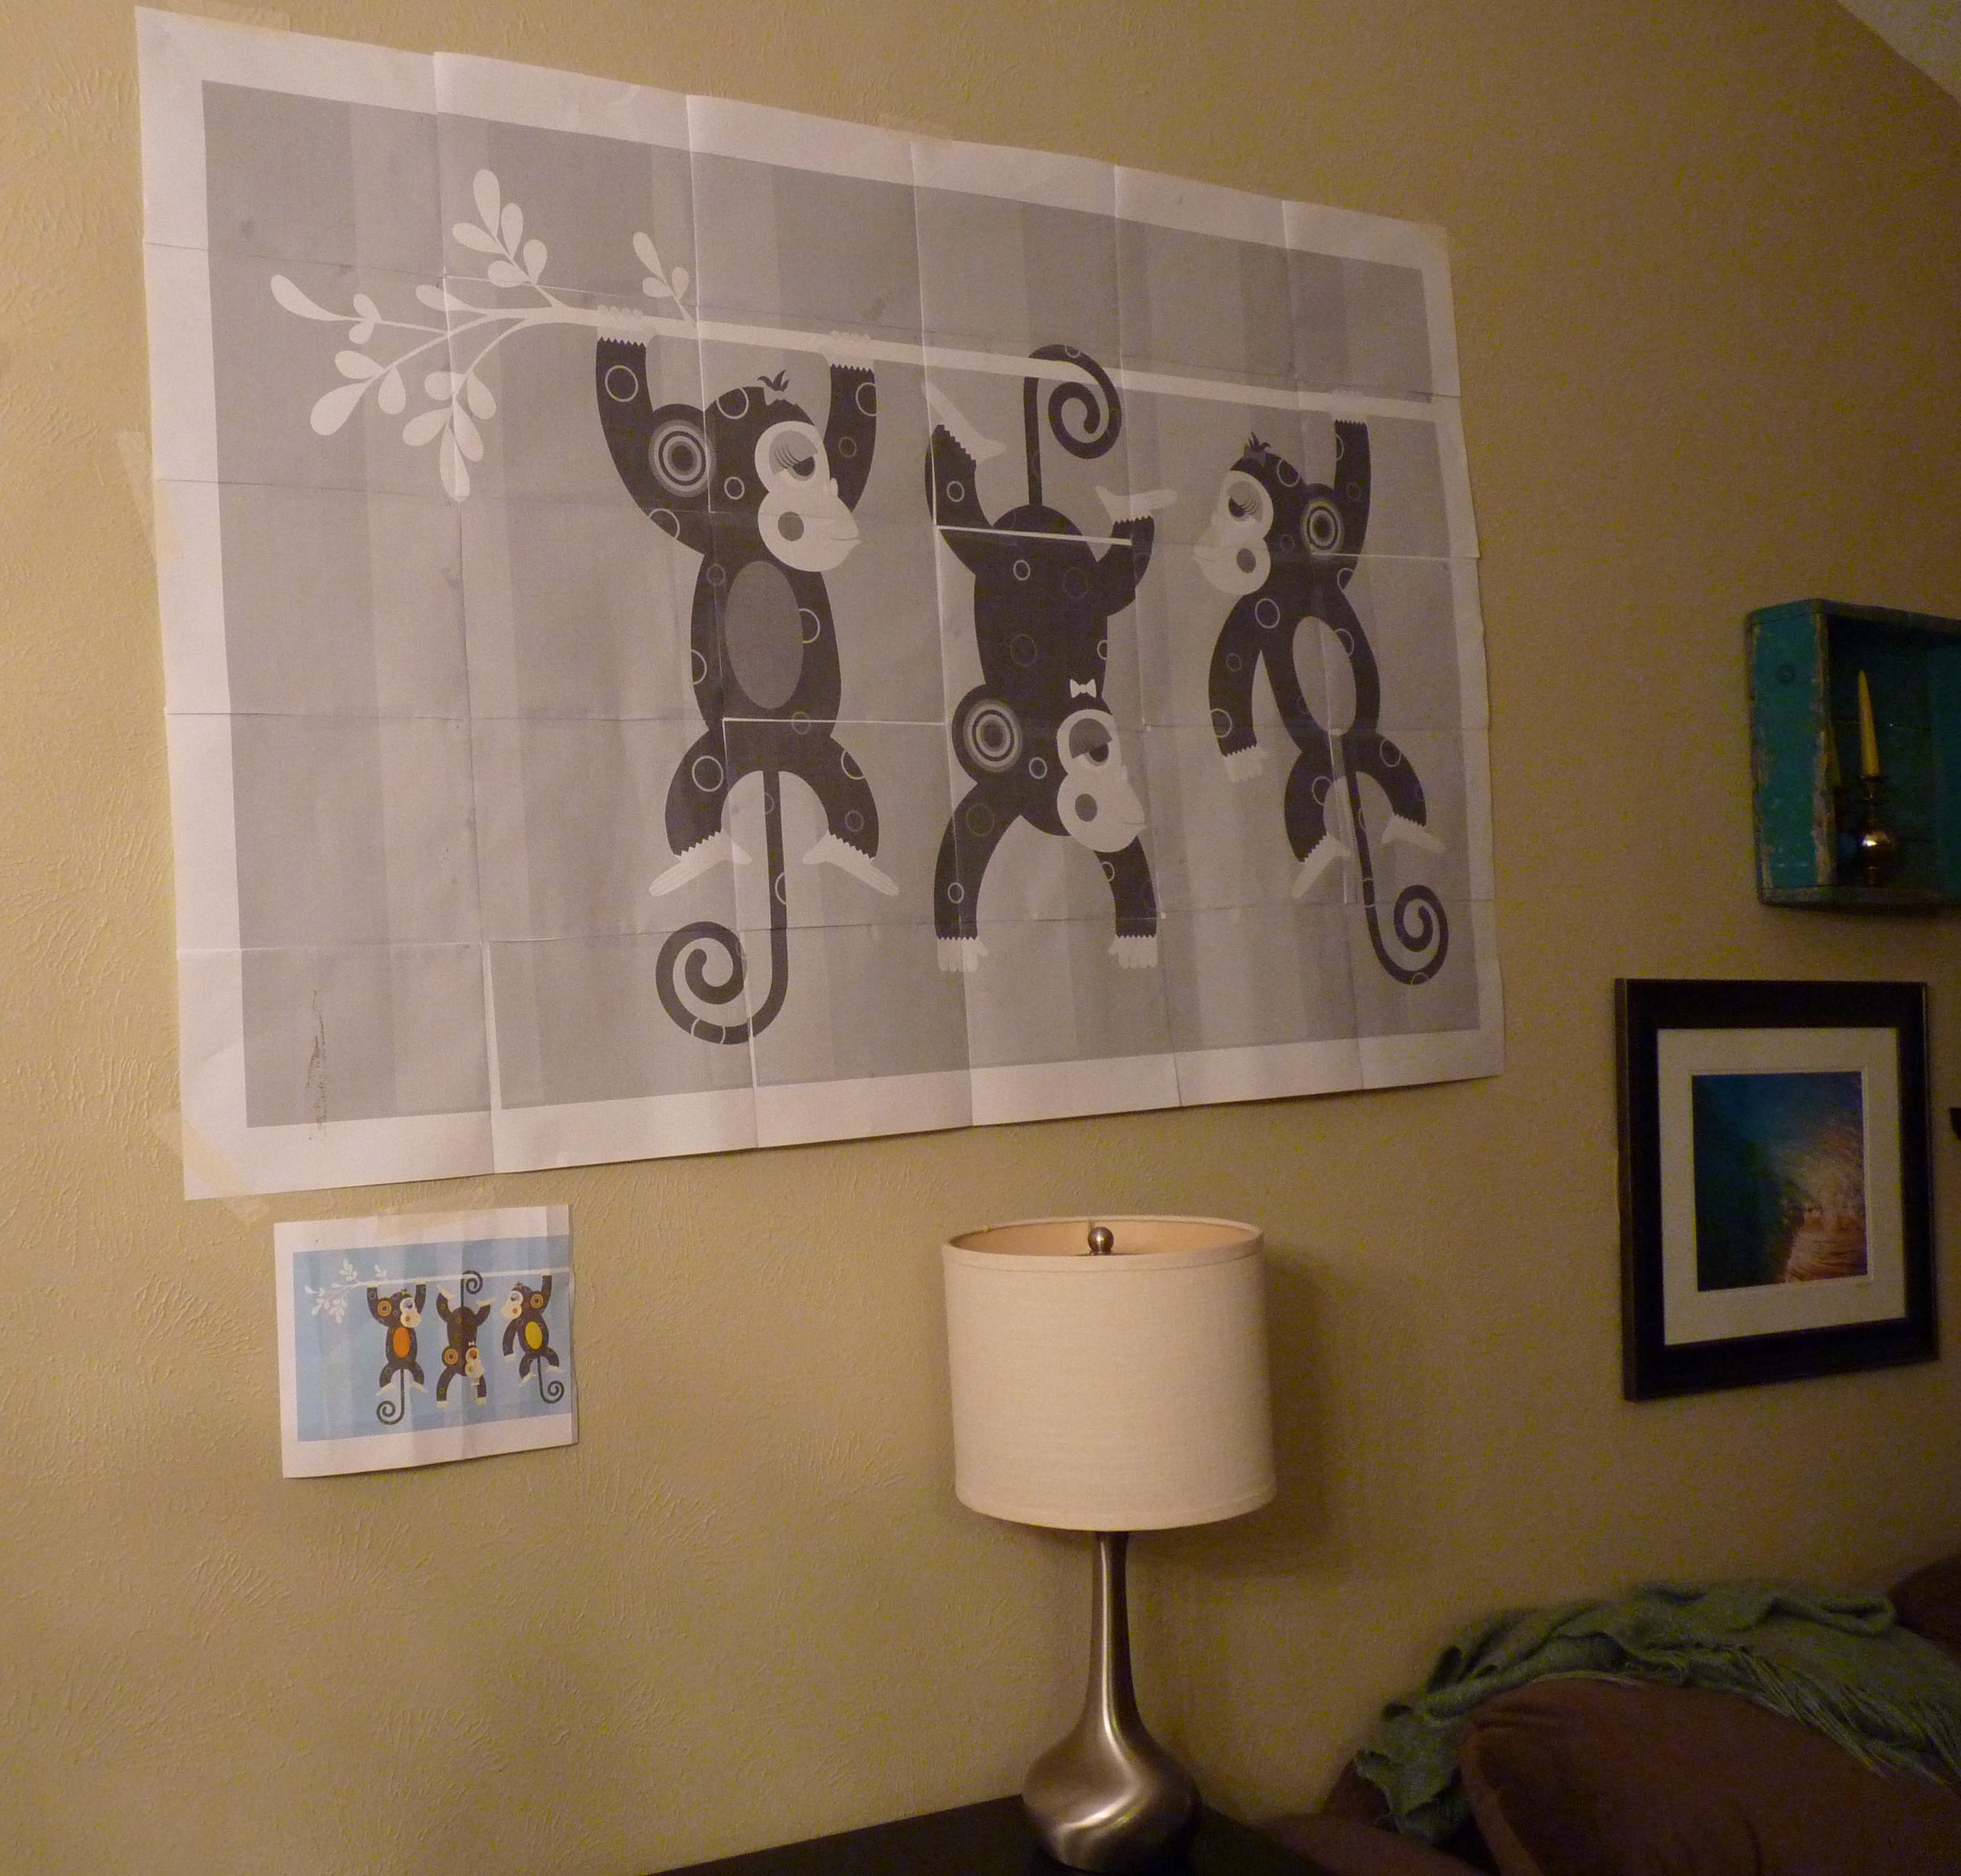 Monkey art comped on wall